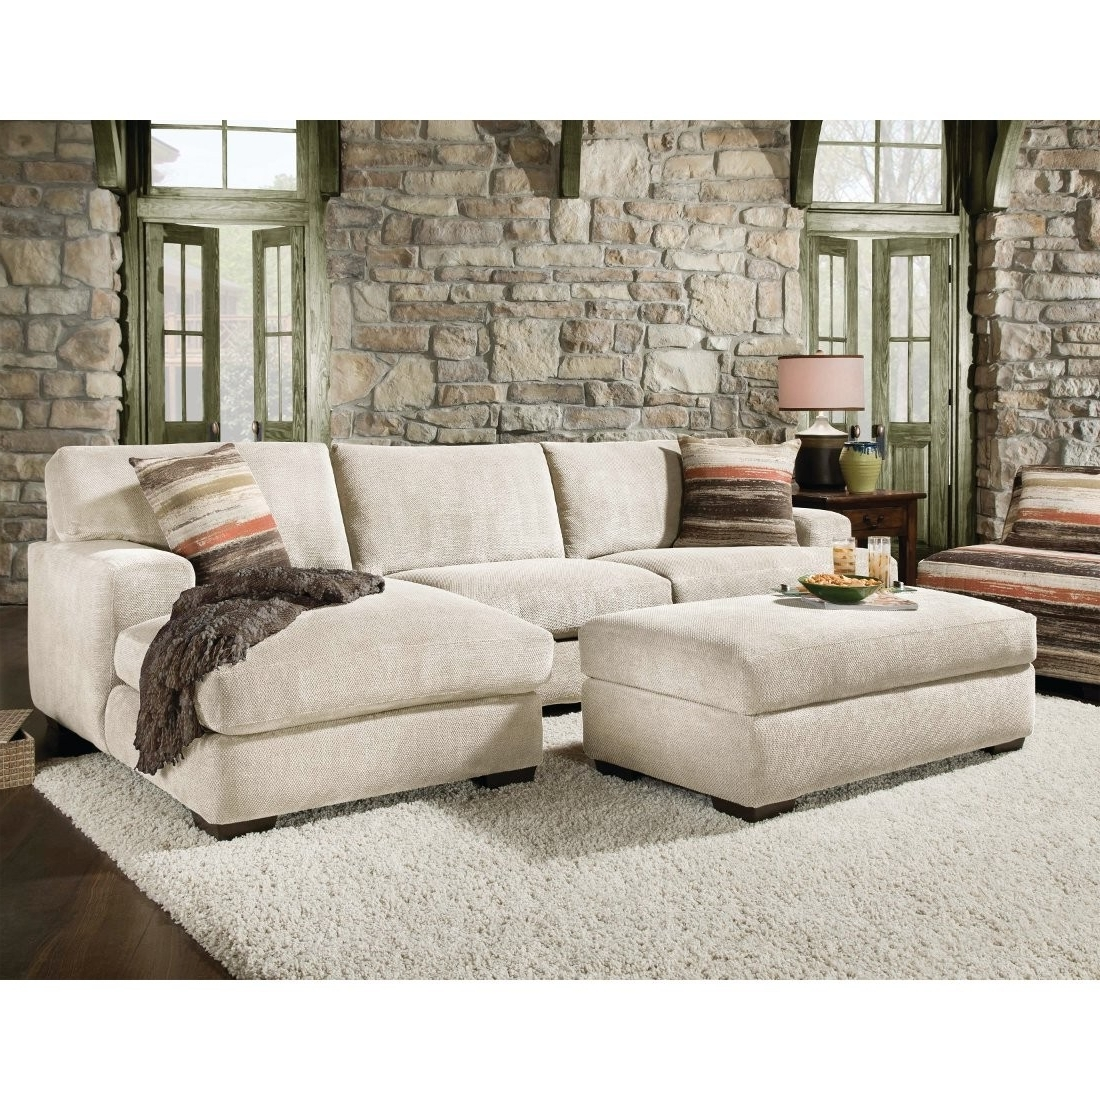 2019 Sectional Sofas With Chaise Lounge And Ottoman Intended For Sectional Sofa Design: Sectional Sofa With Chaise And Ottoman (View 4 of 20)